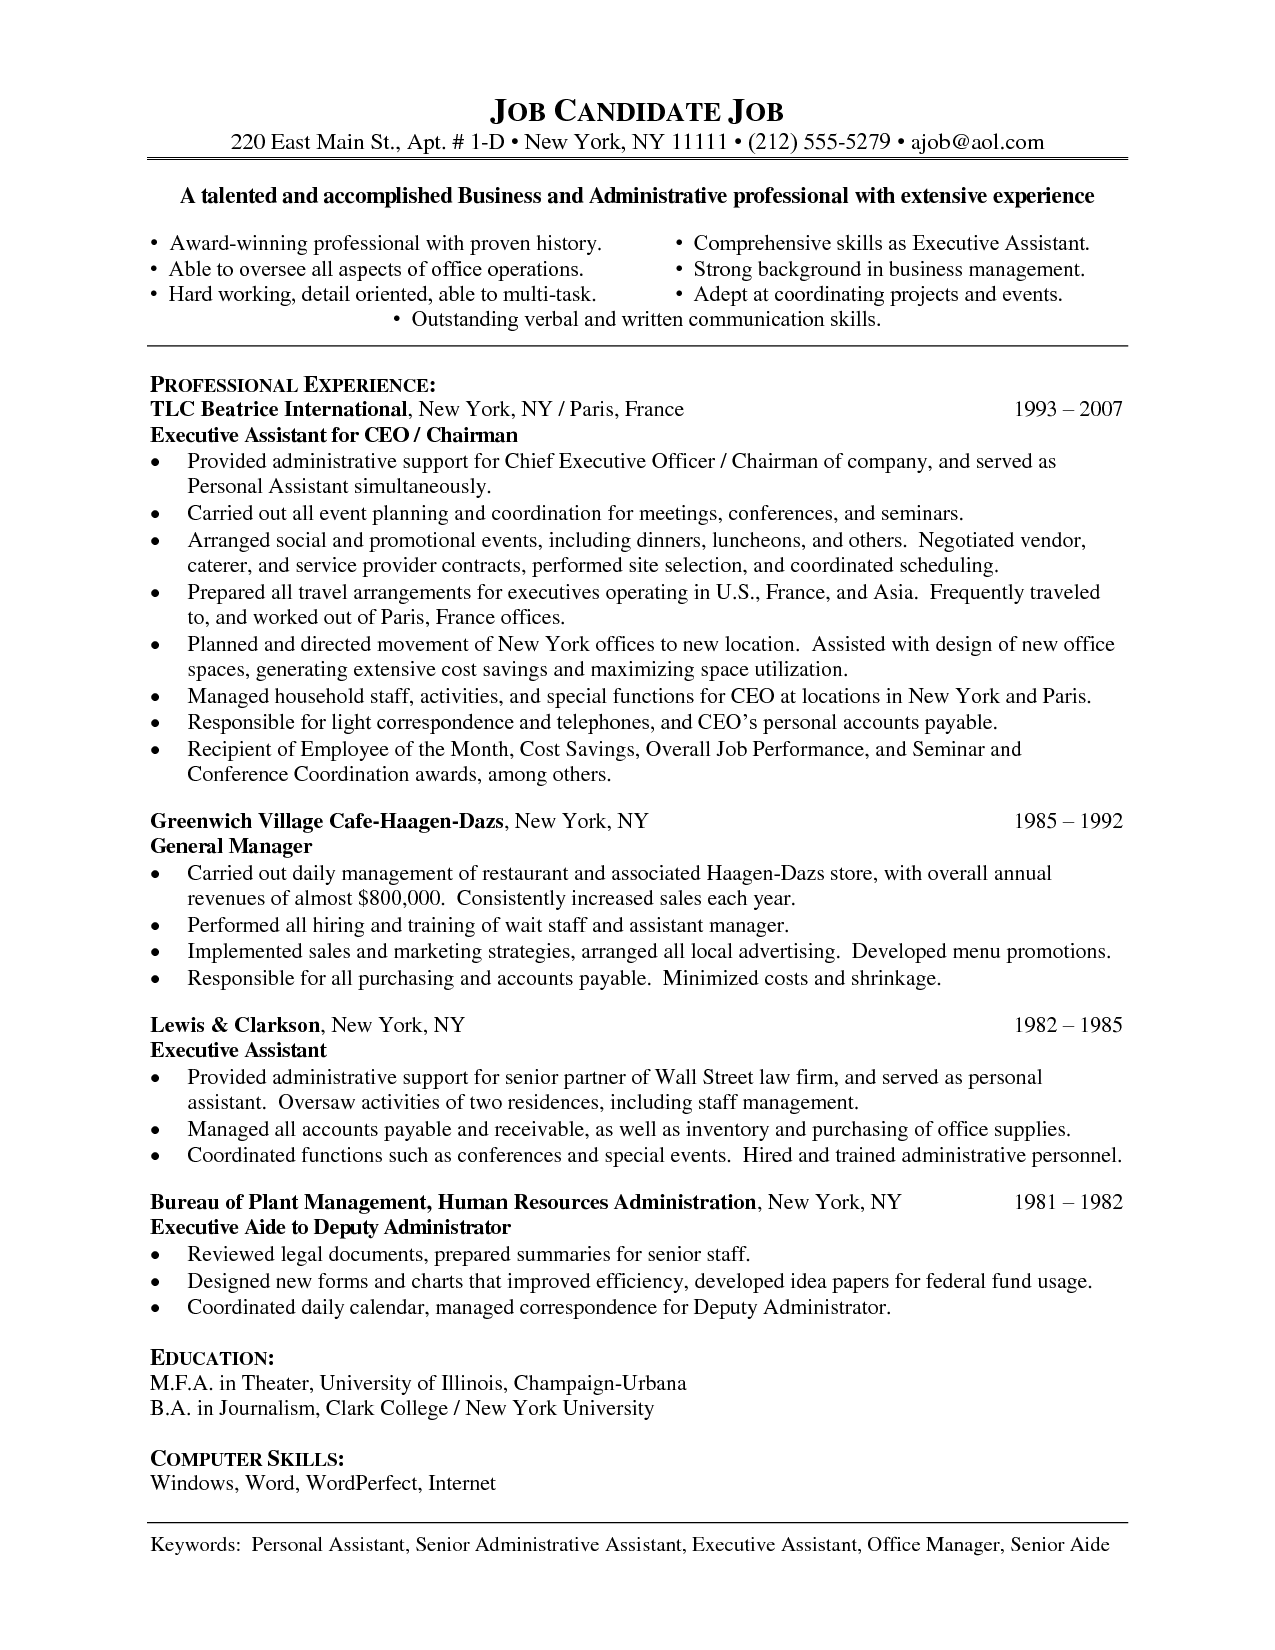 Summary For Marketing Resume Administrative Functional Resume Google Search